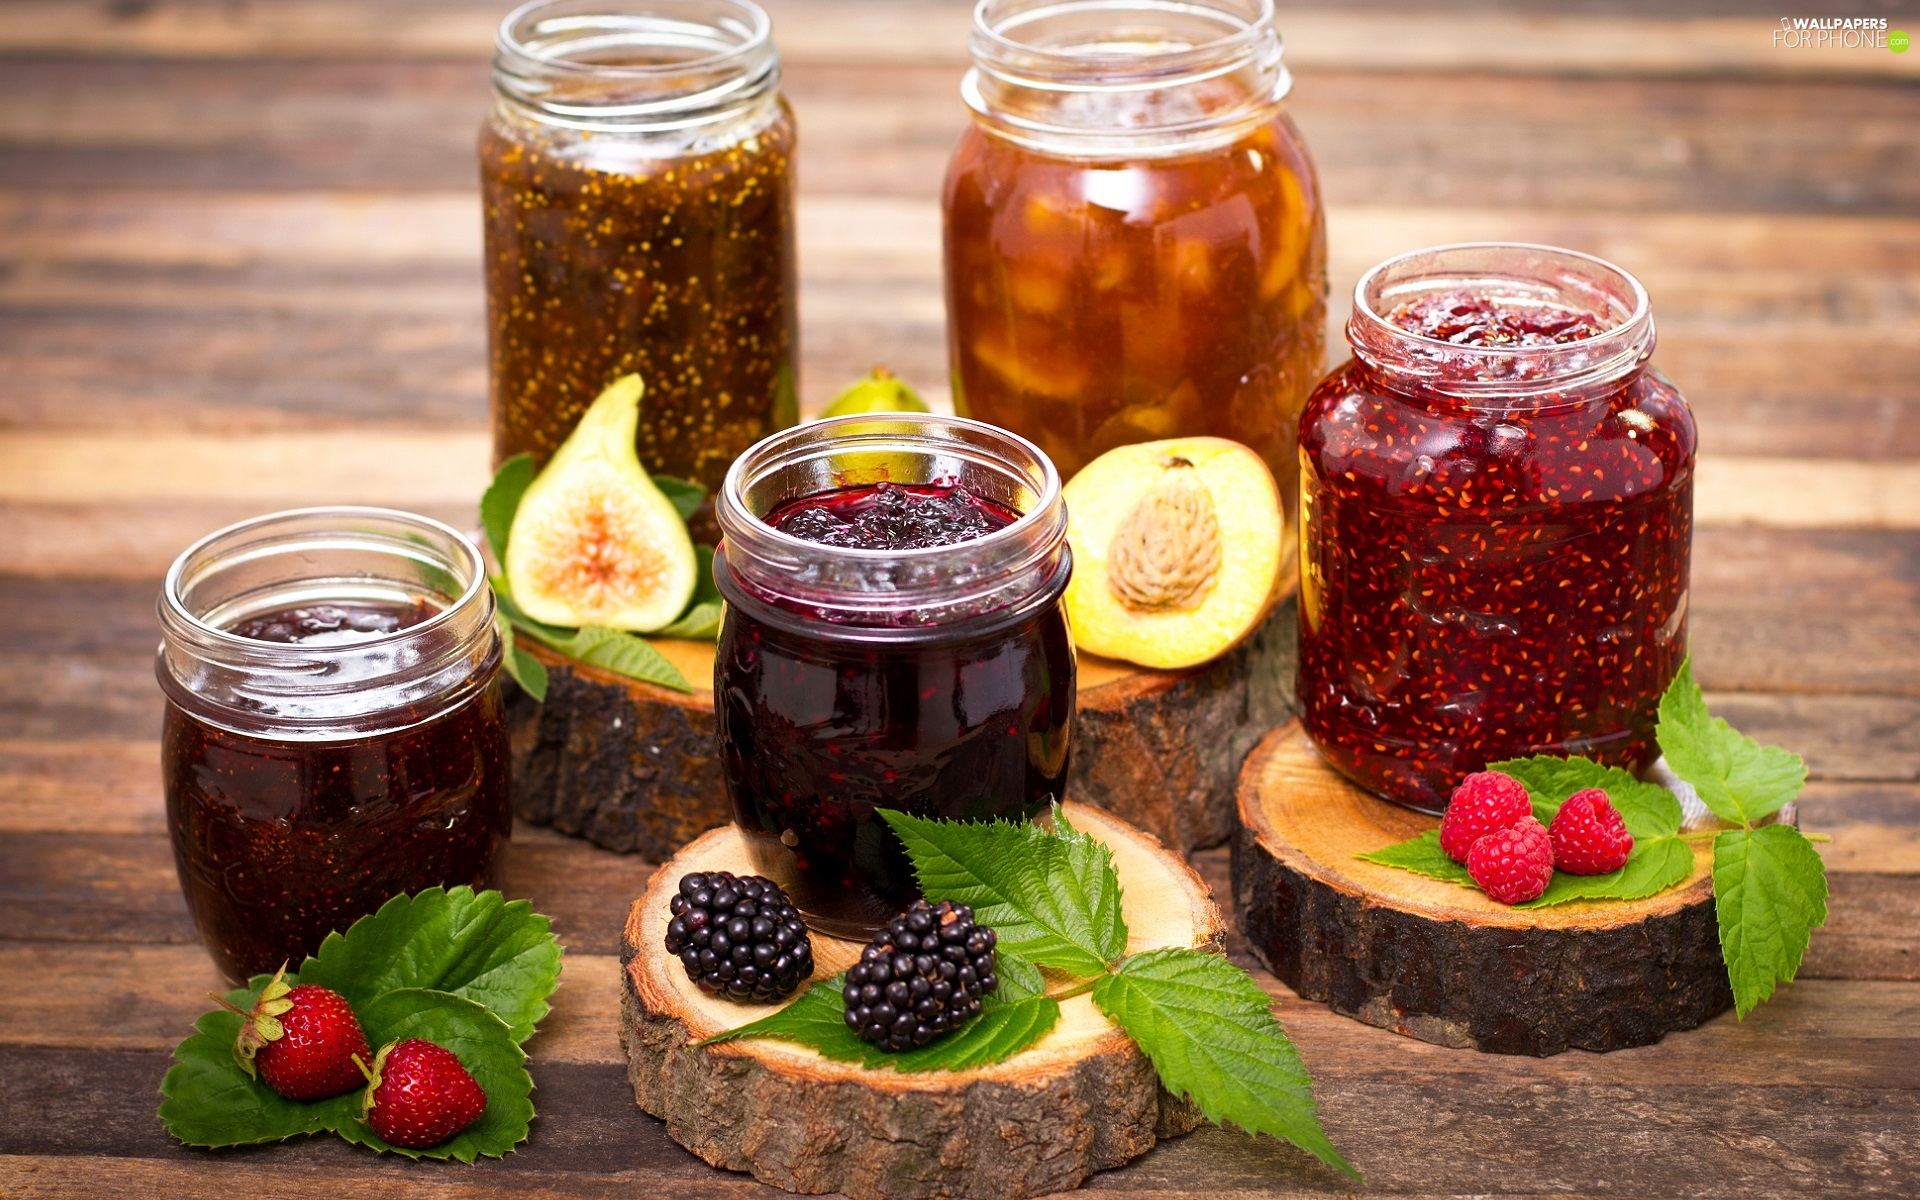 Jars, Preparations, Jam, Fruits, peach, leaves, blackberries, strawberries, raspberries